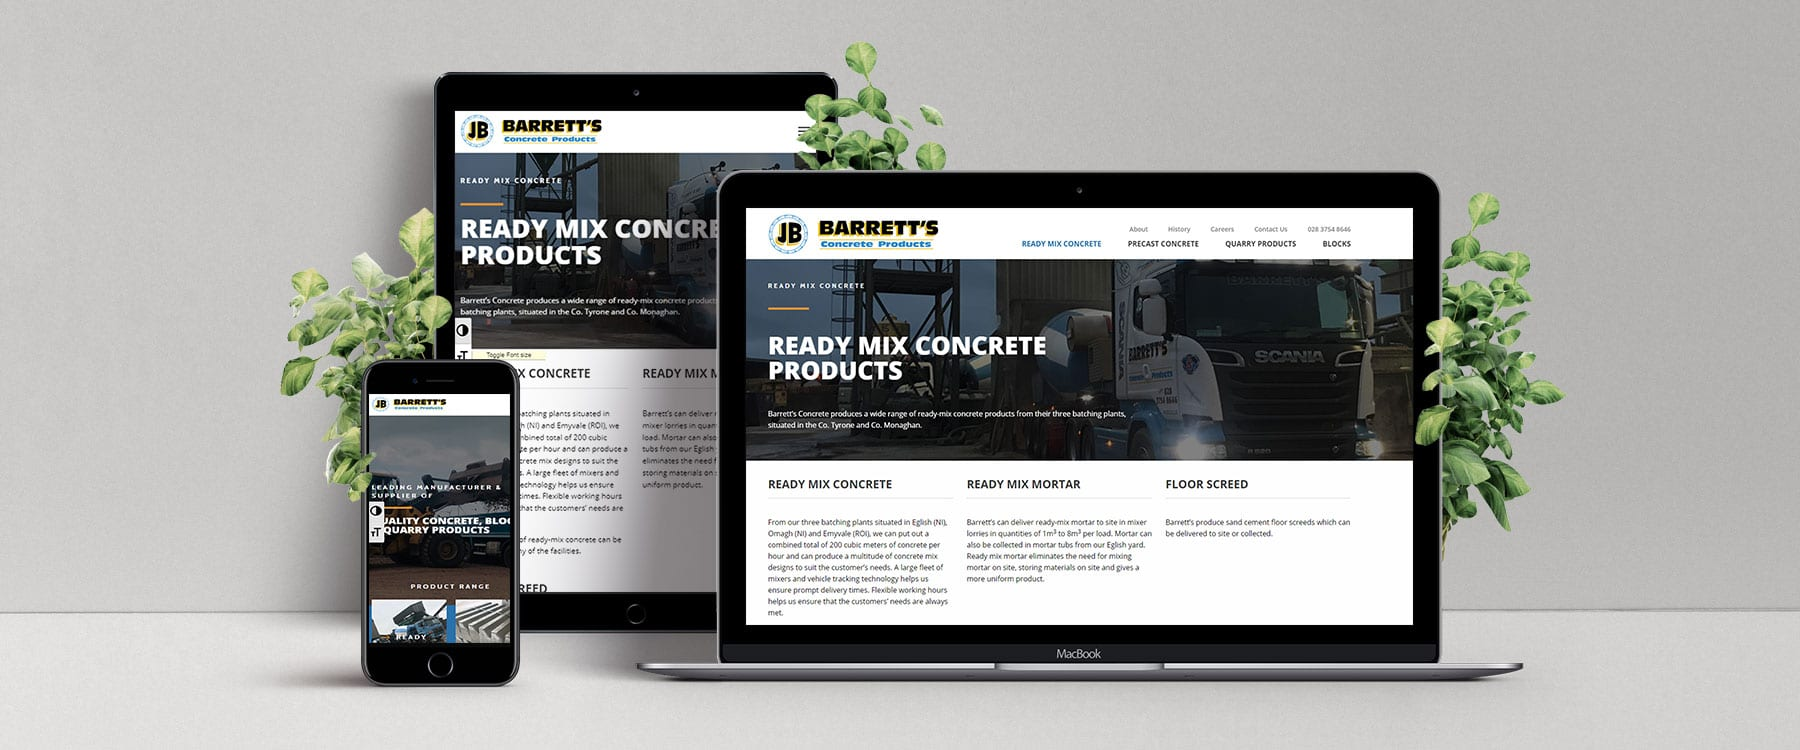 Professional, Engaging New Website for Barrett's Concrete Image